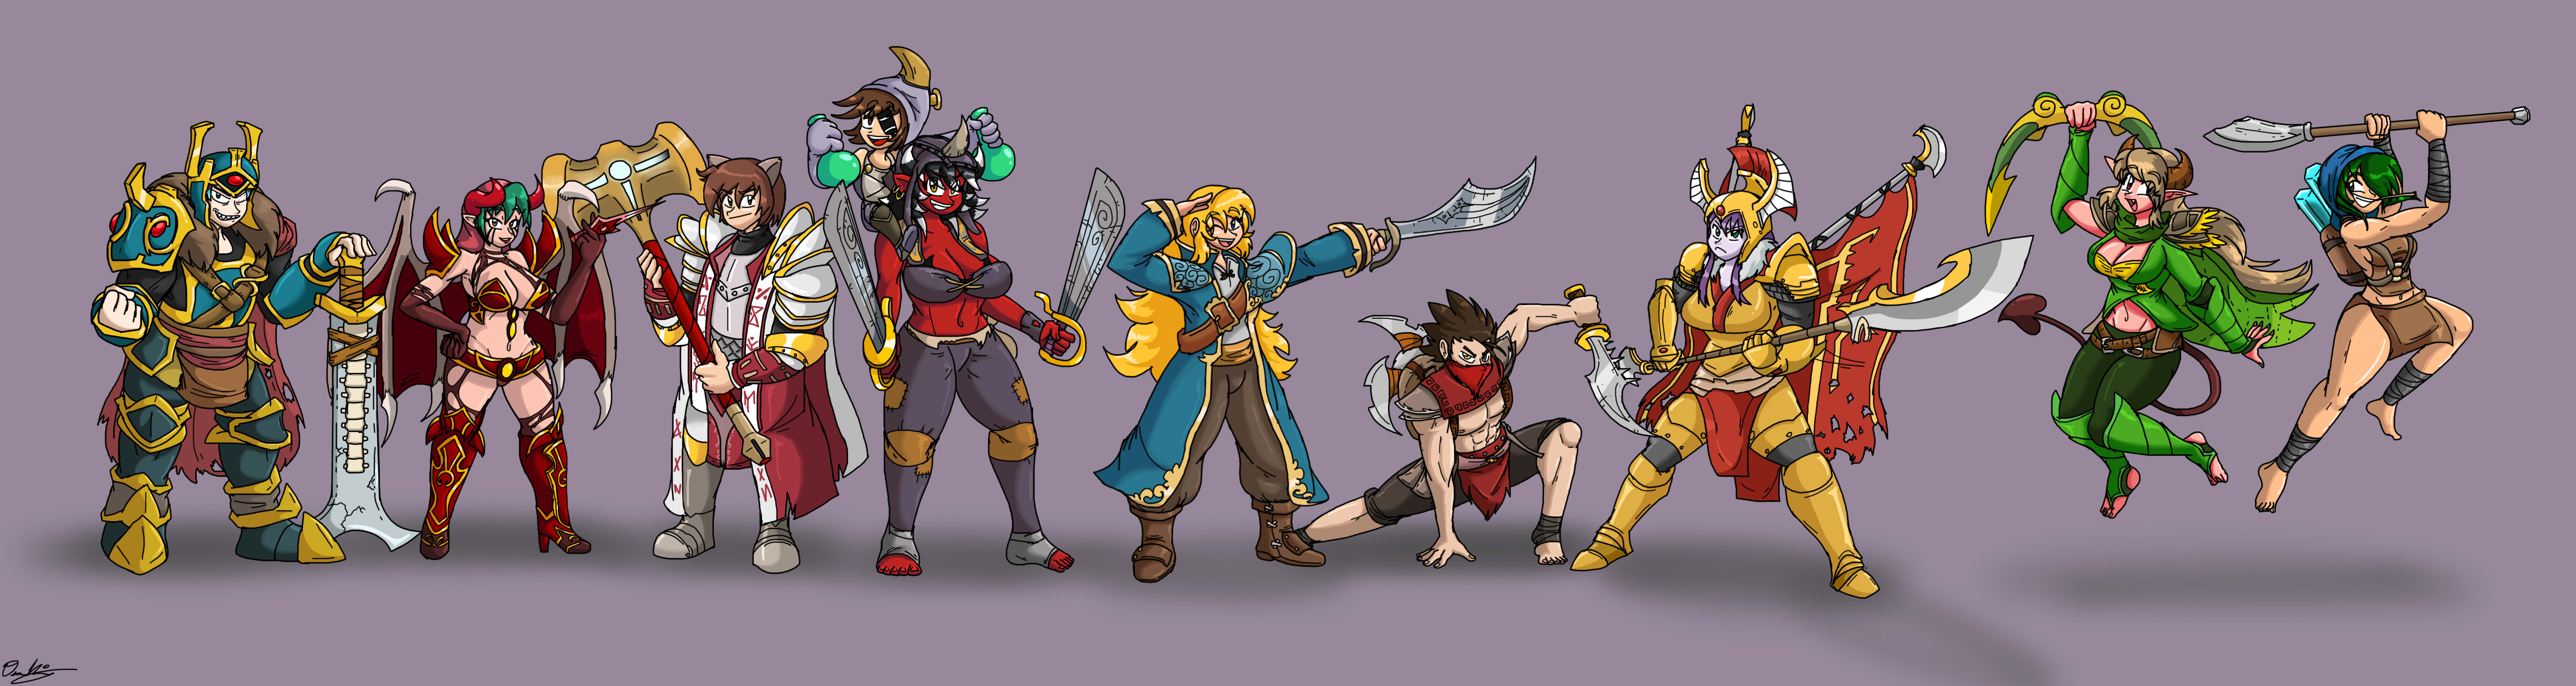 Deviants Of The Ancients by SHITFORBRAINSCHAN